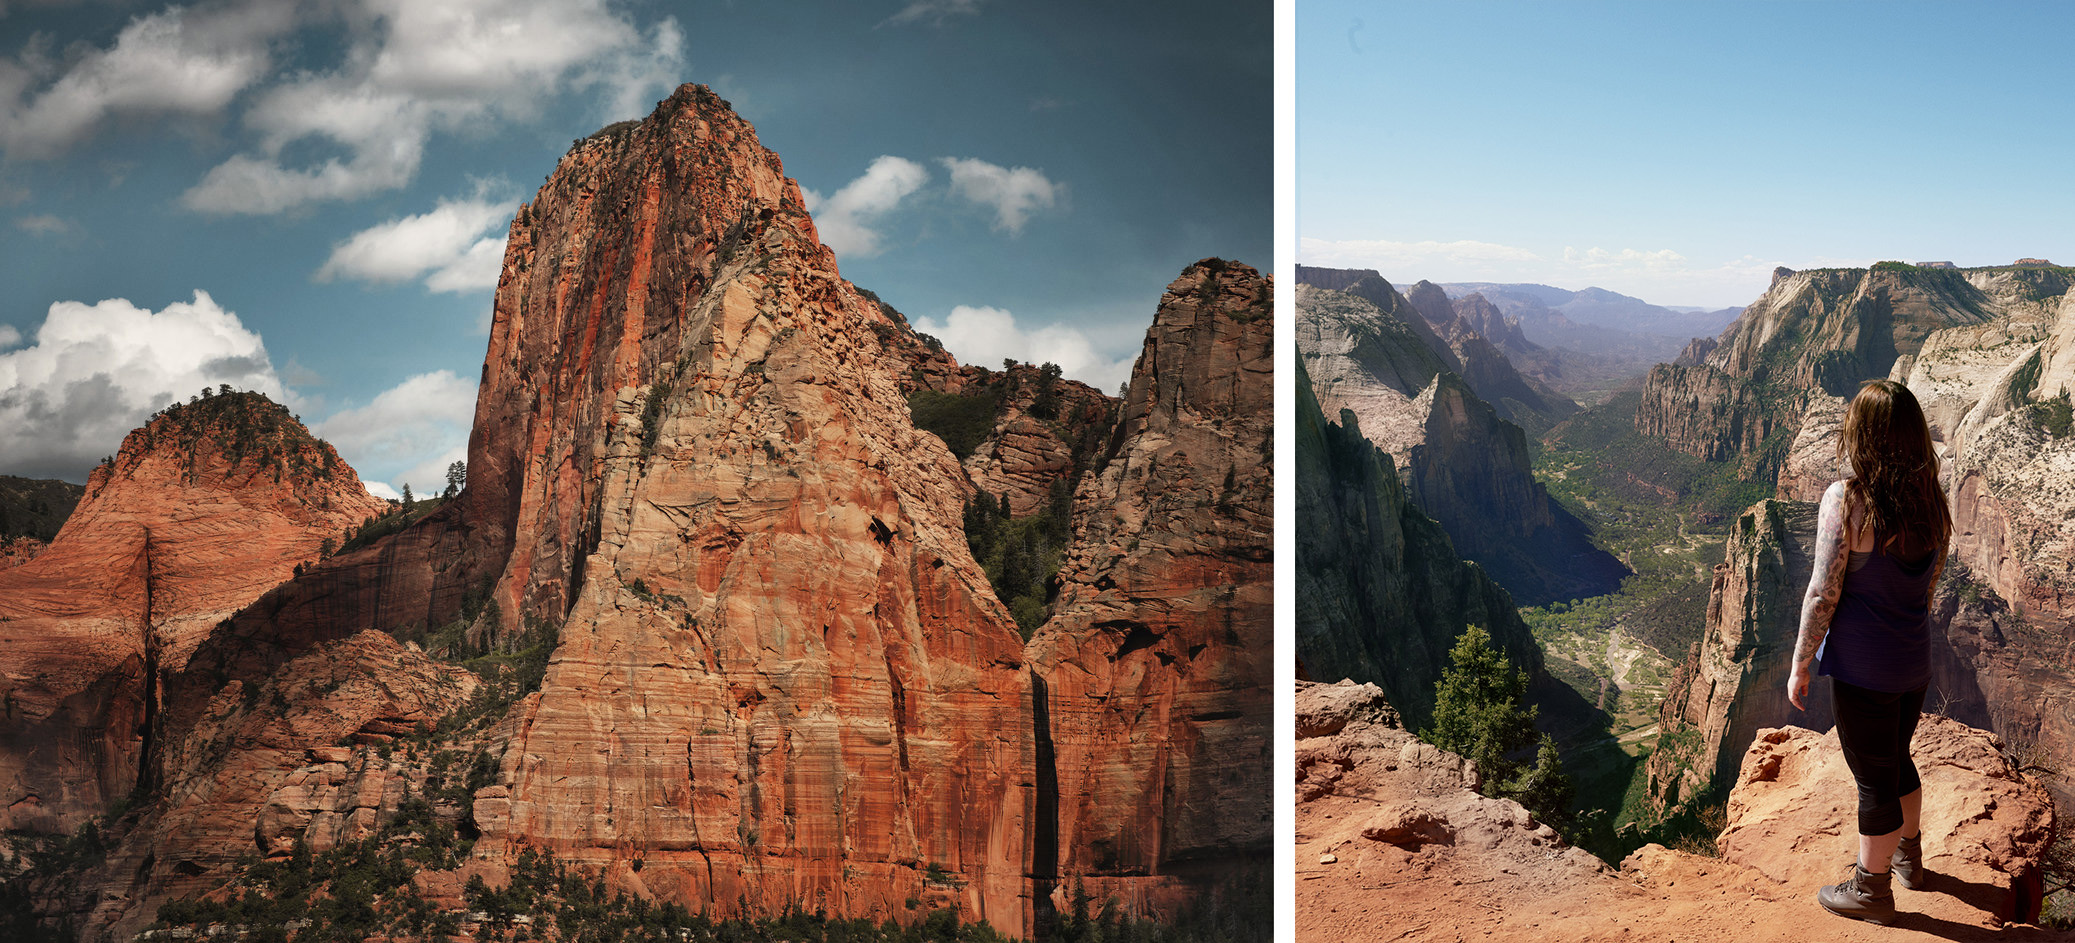 Kolob Canyon & Observation Point, Zion National Park, Utah